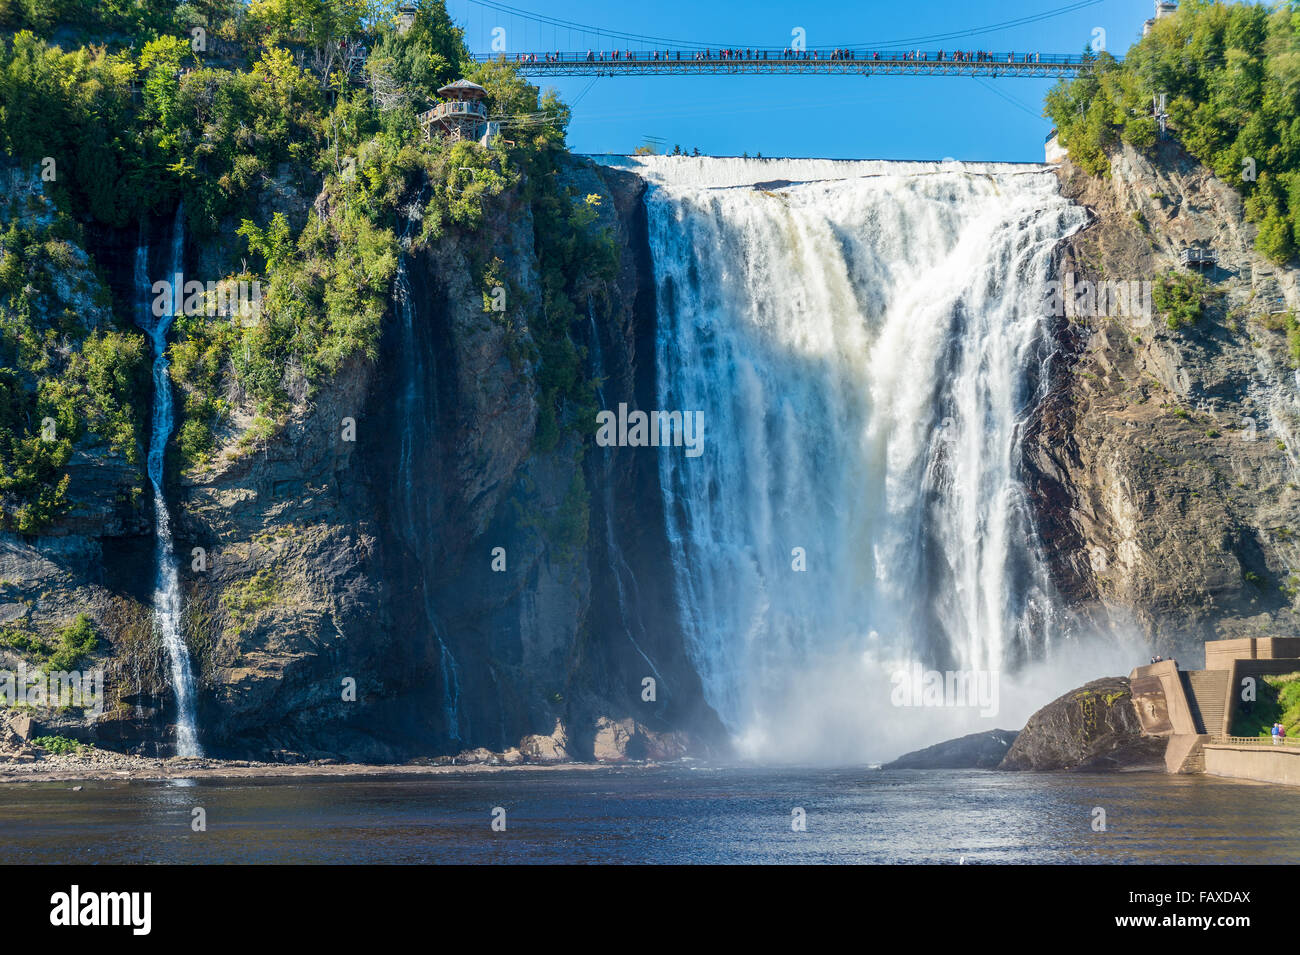 Montmorency Falls near Quebec City, Canada, in September 2015 - Stock Image